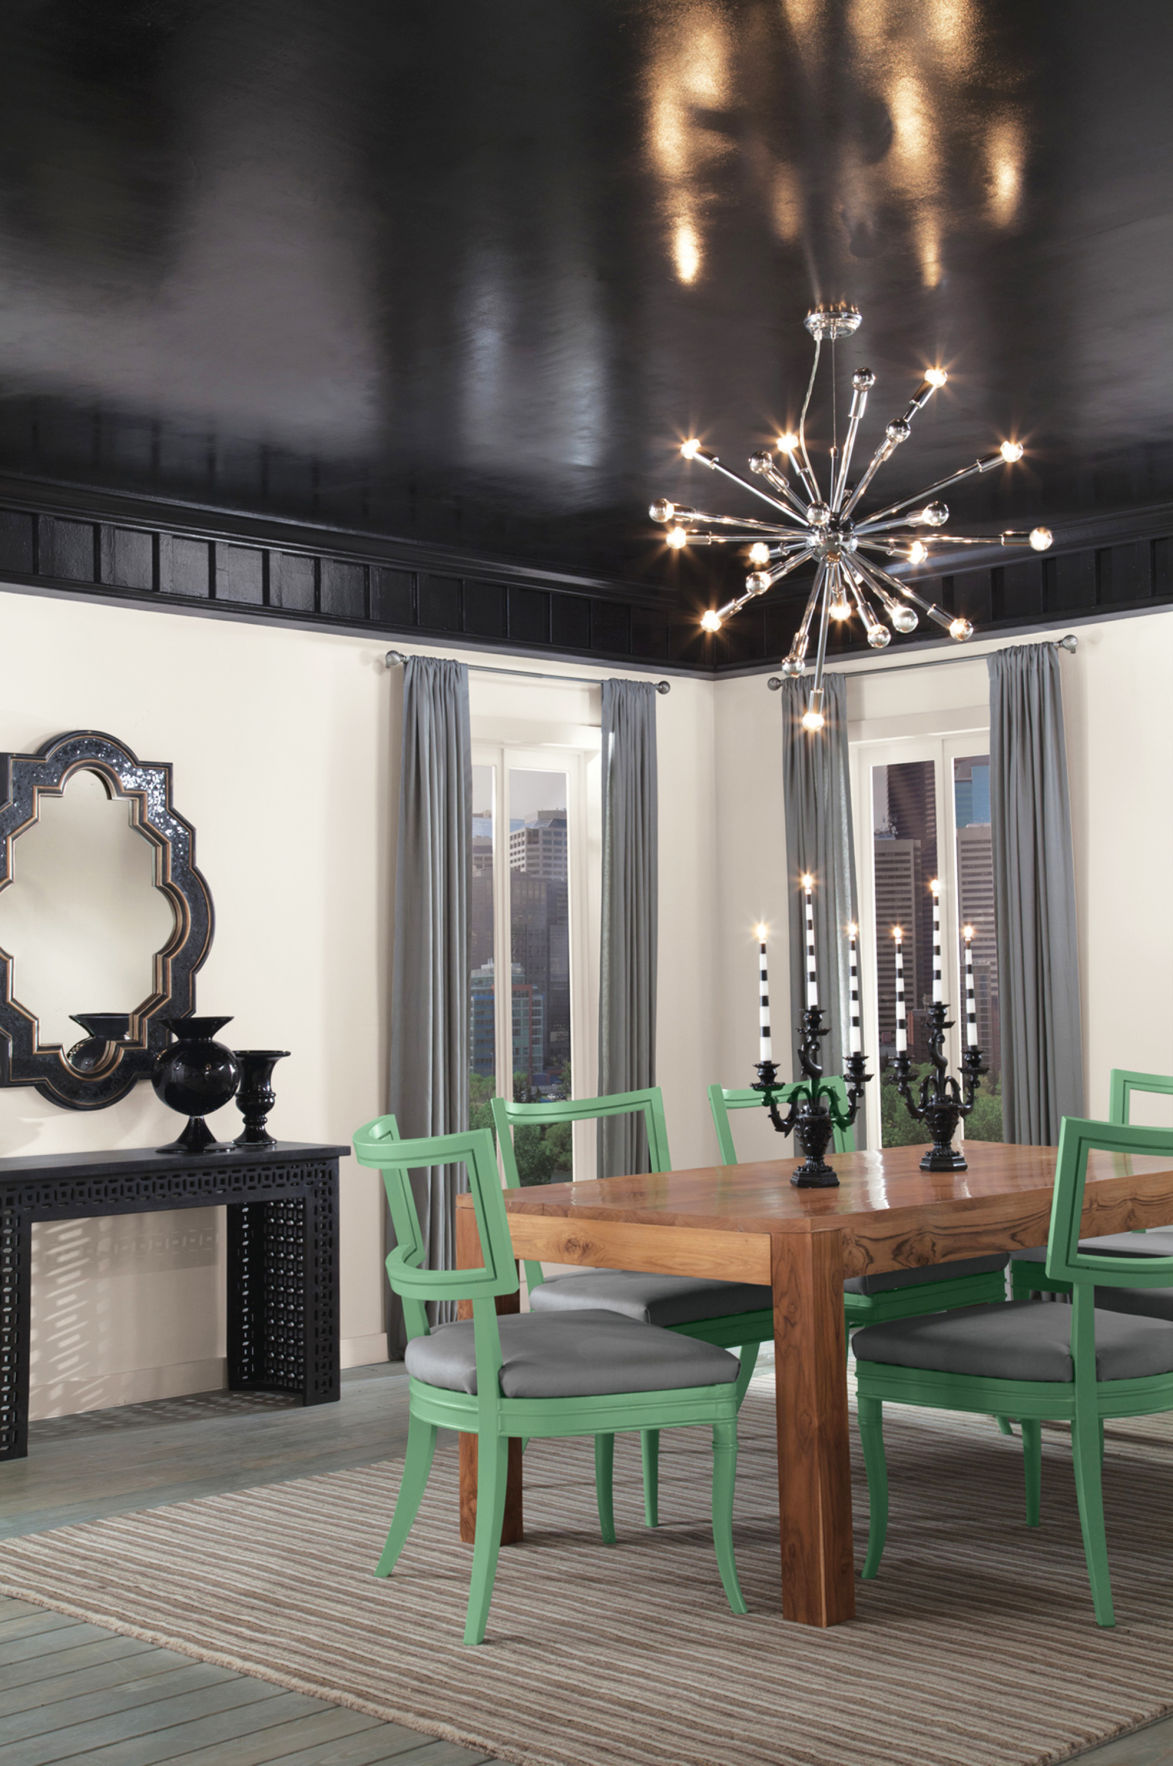 The Dark Side Of Decorating Touch Of Black Adds Allure To Decor